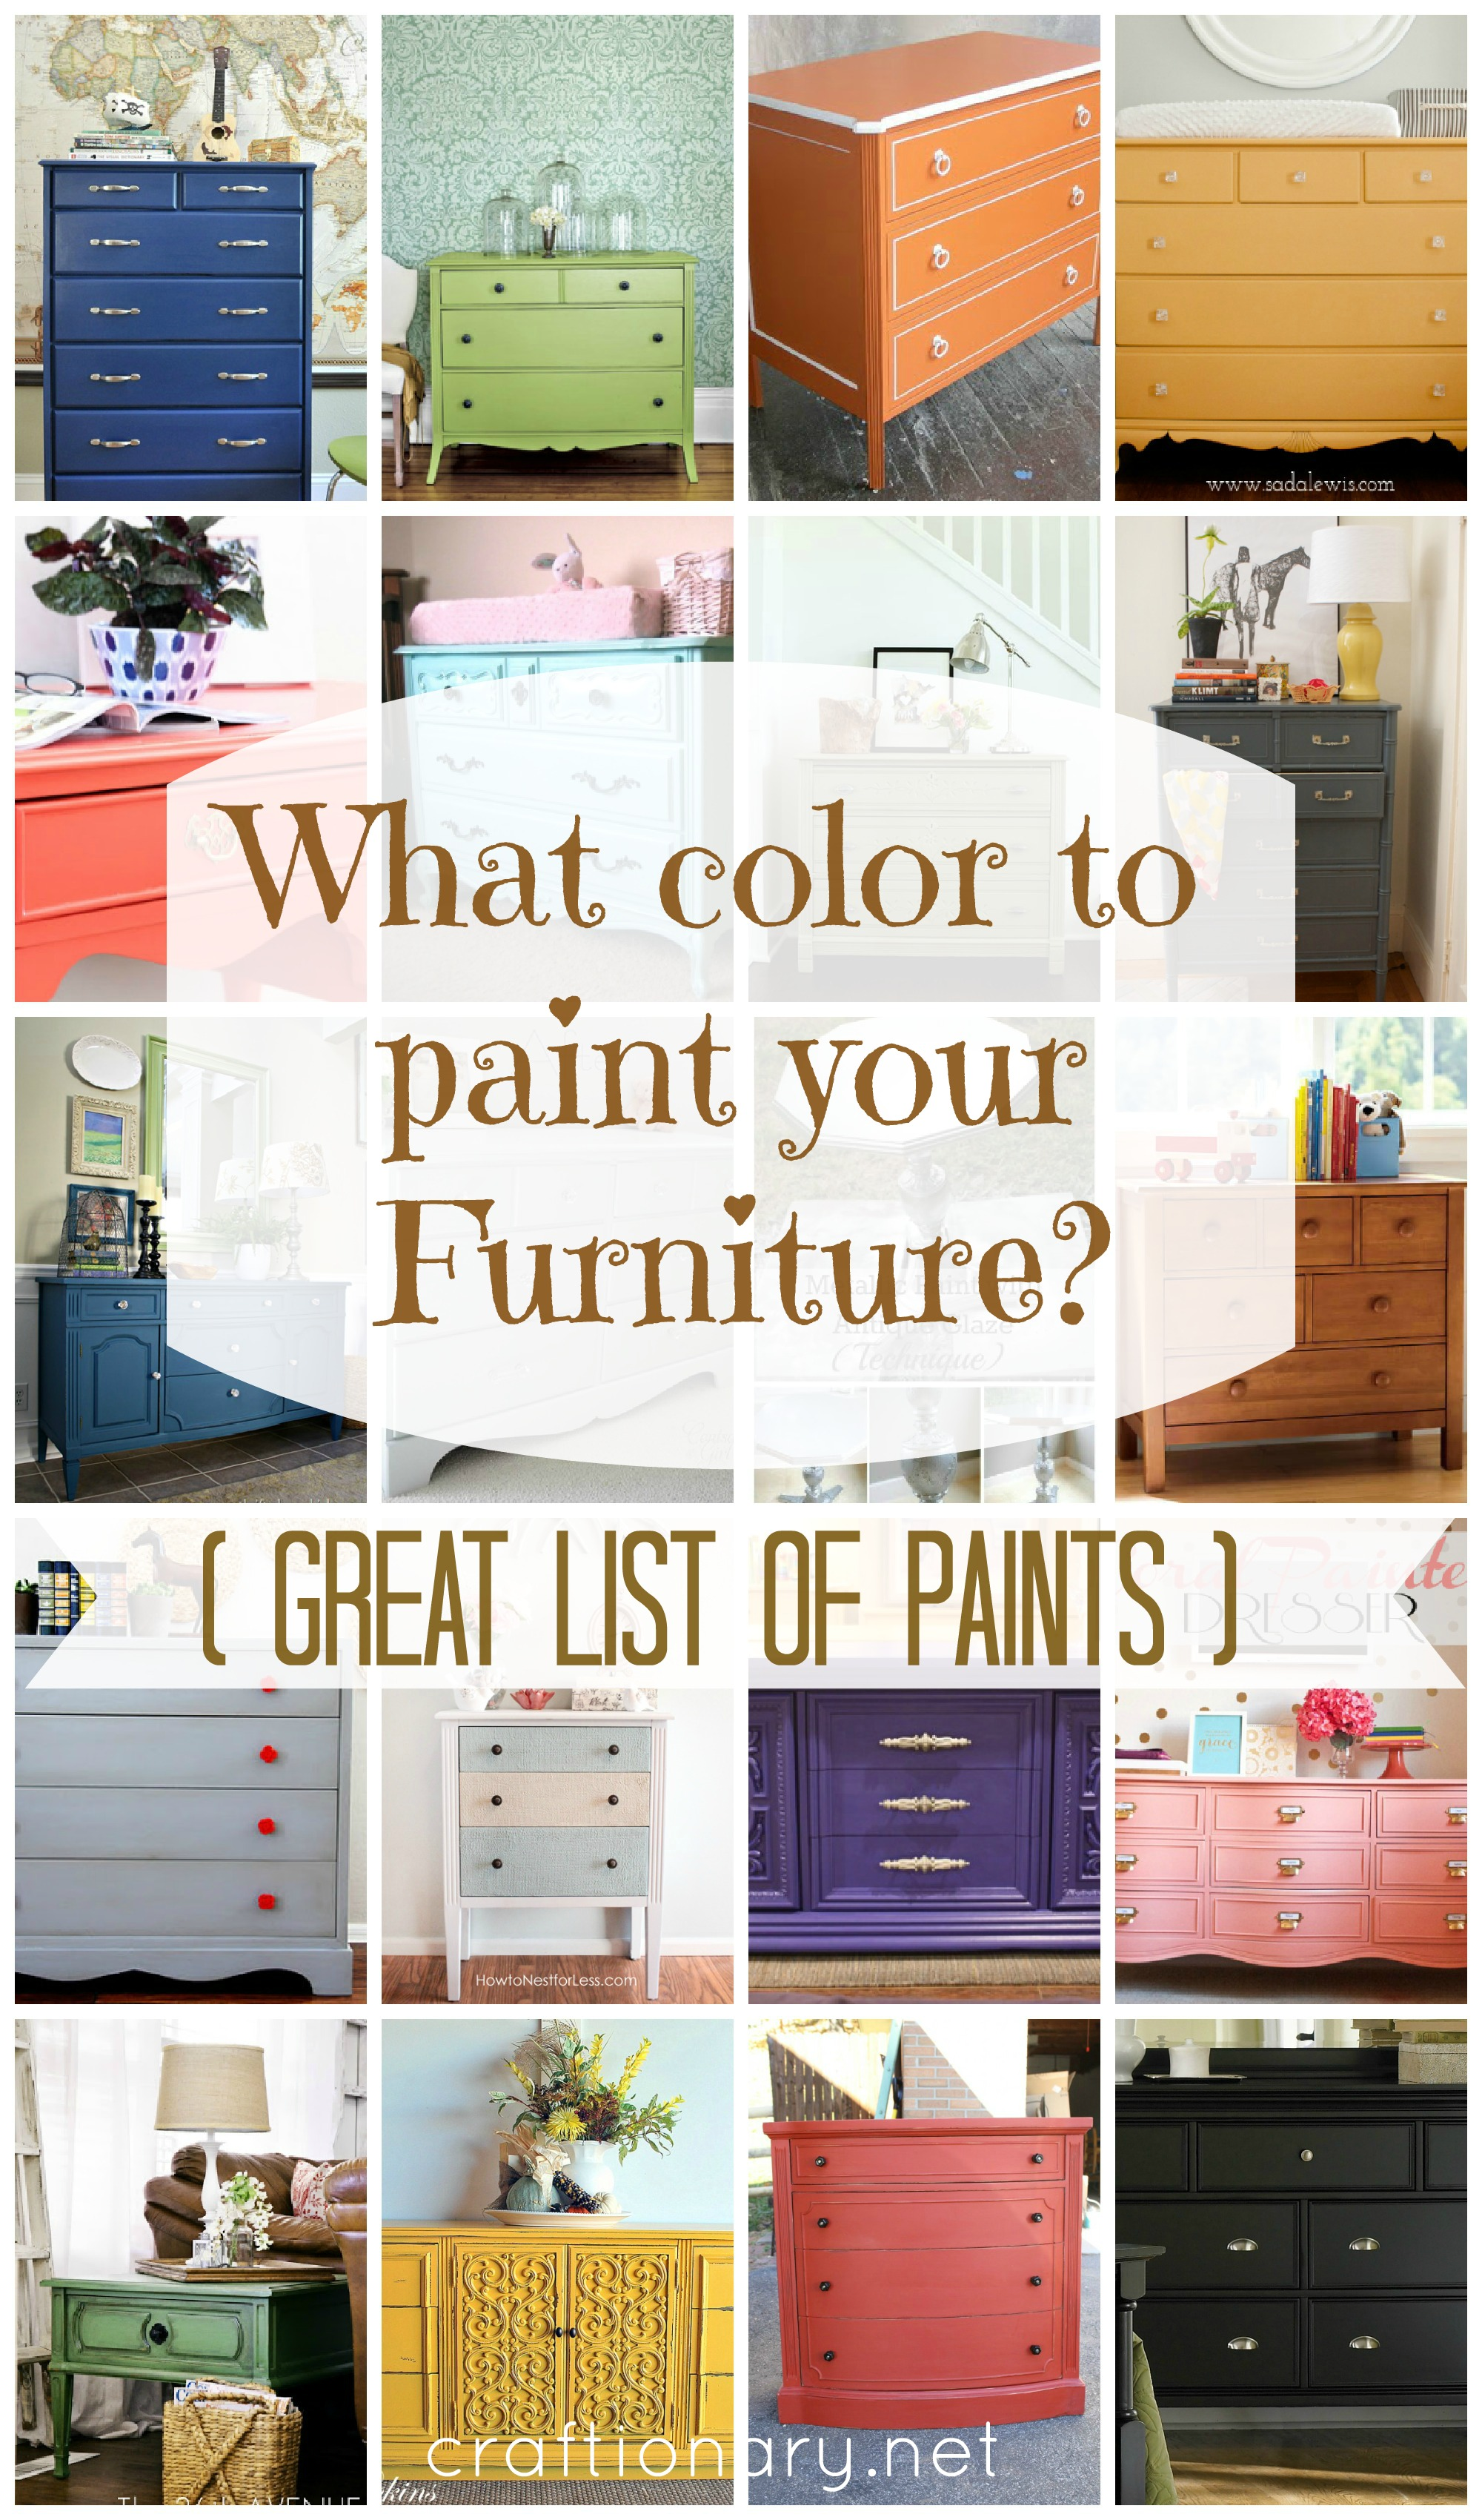 Spray Painted Furniture Ideas Part - 34: What Color To Paint Furniture